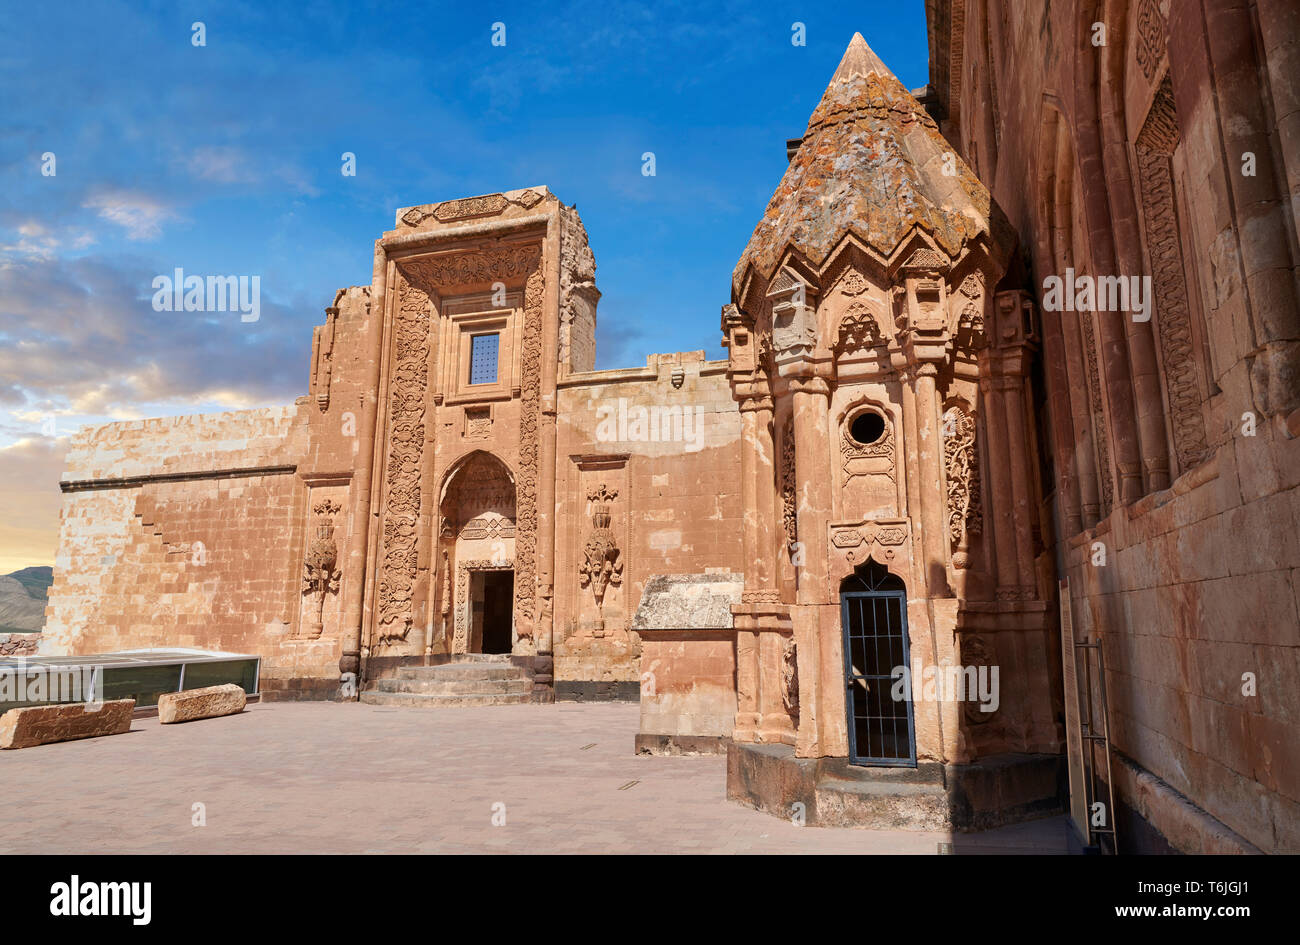 Courtyard and  entrance to the mausoleum of the 18th Century Ottoman architecture of the Ishak Pasha Palace Turkey Stock Photo